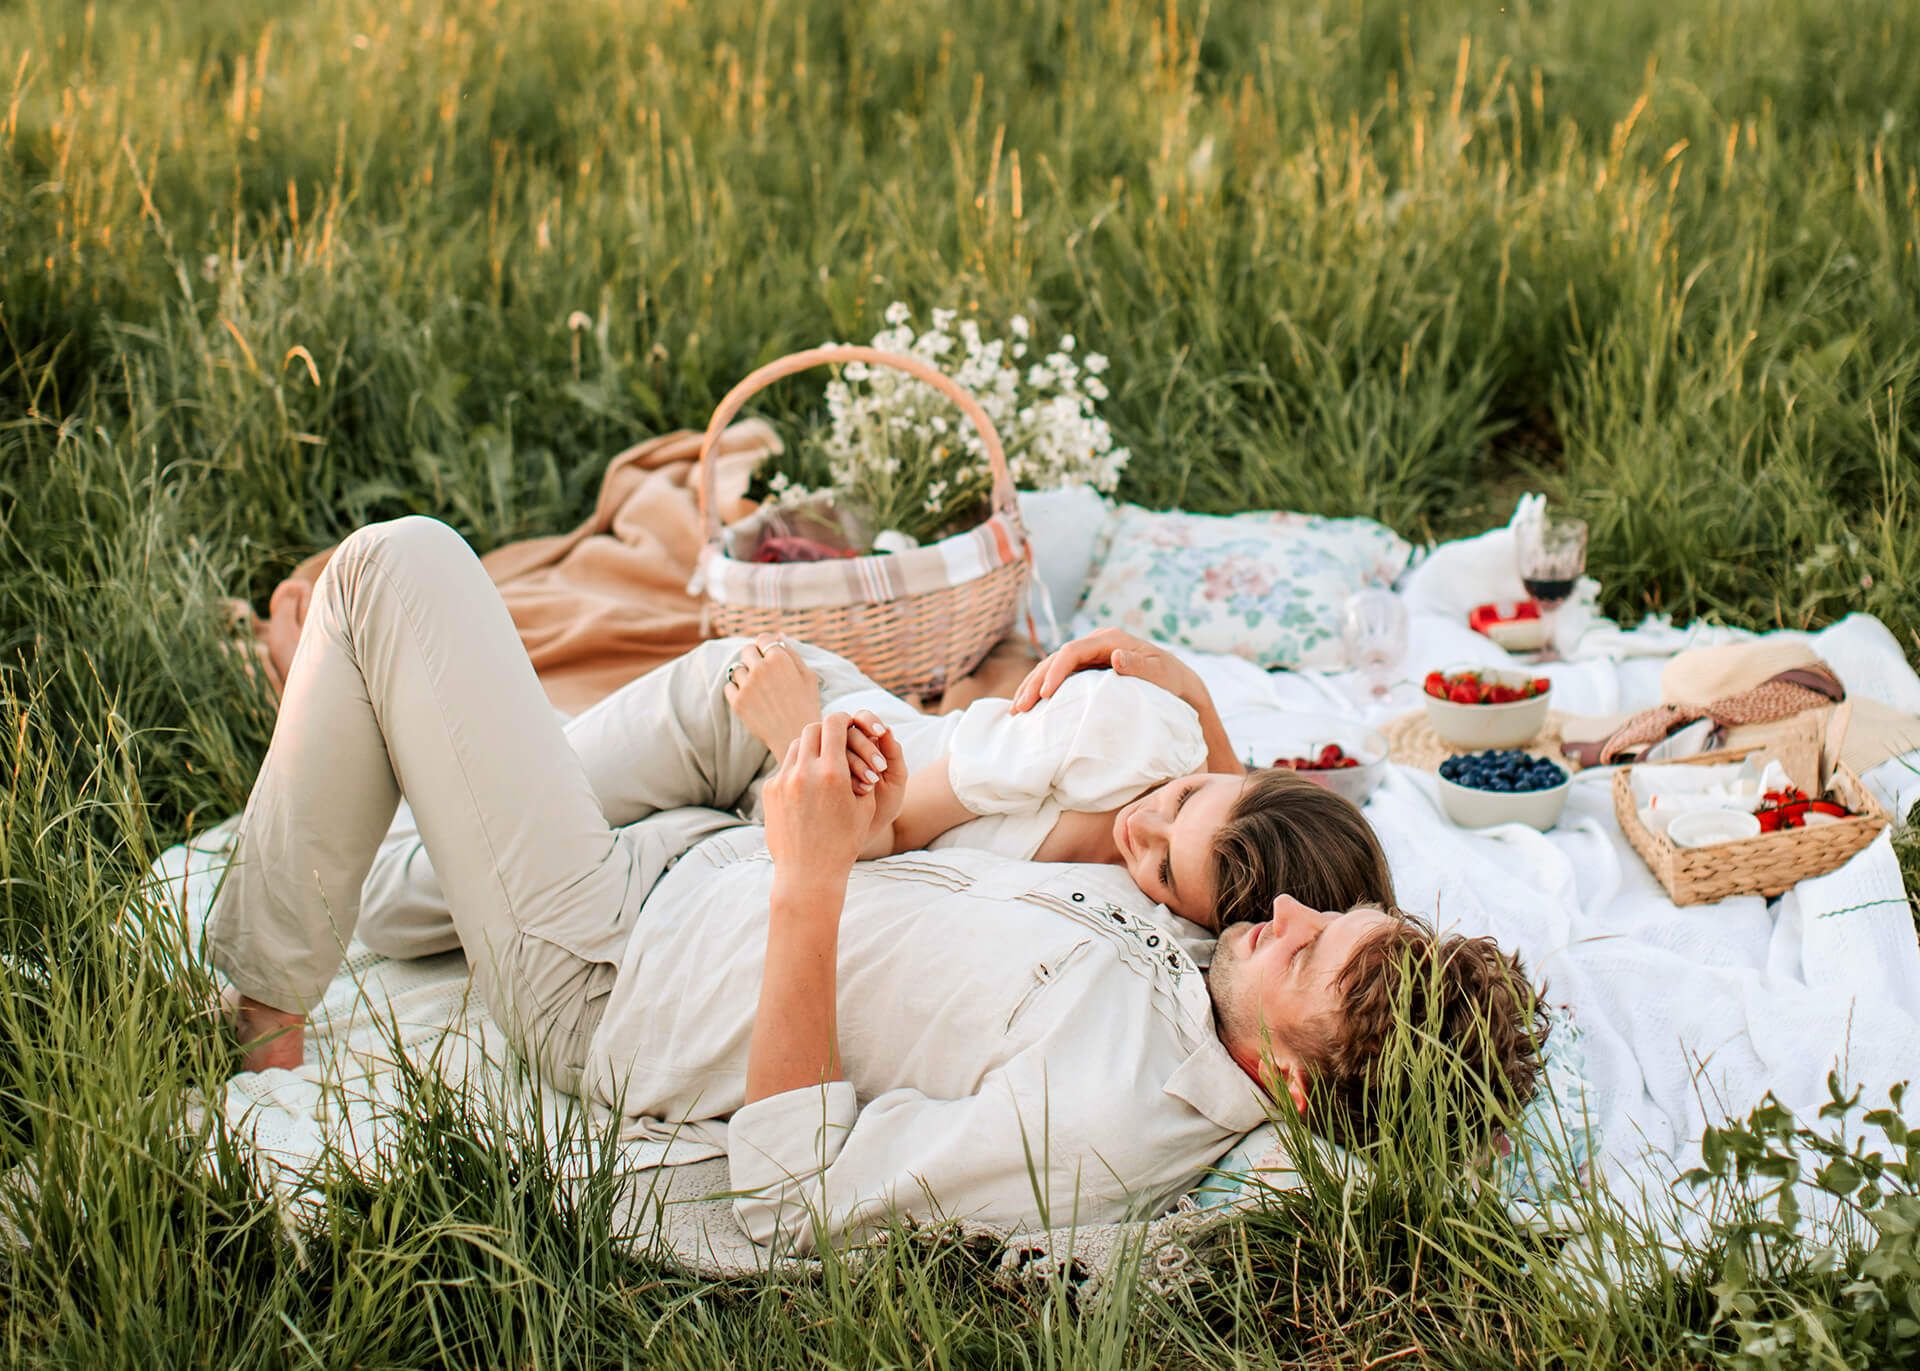 romantic picnic date ideas